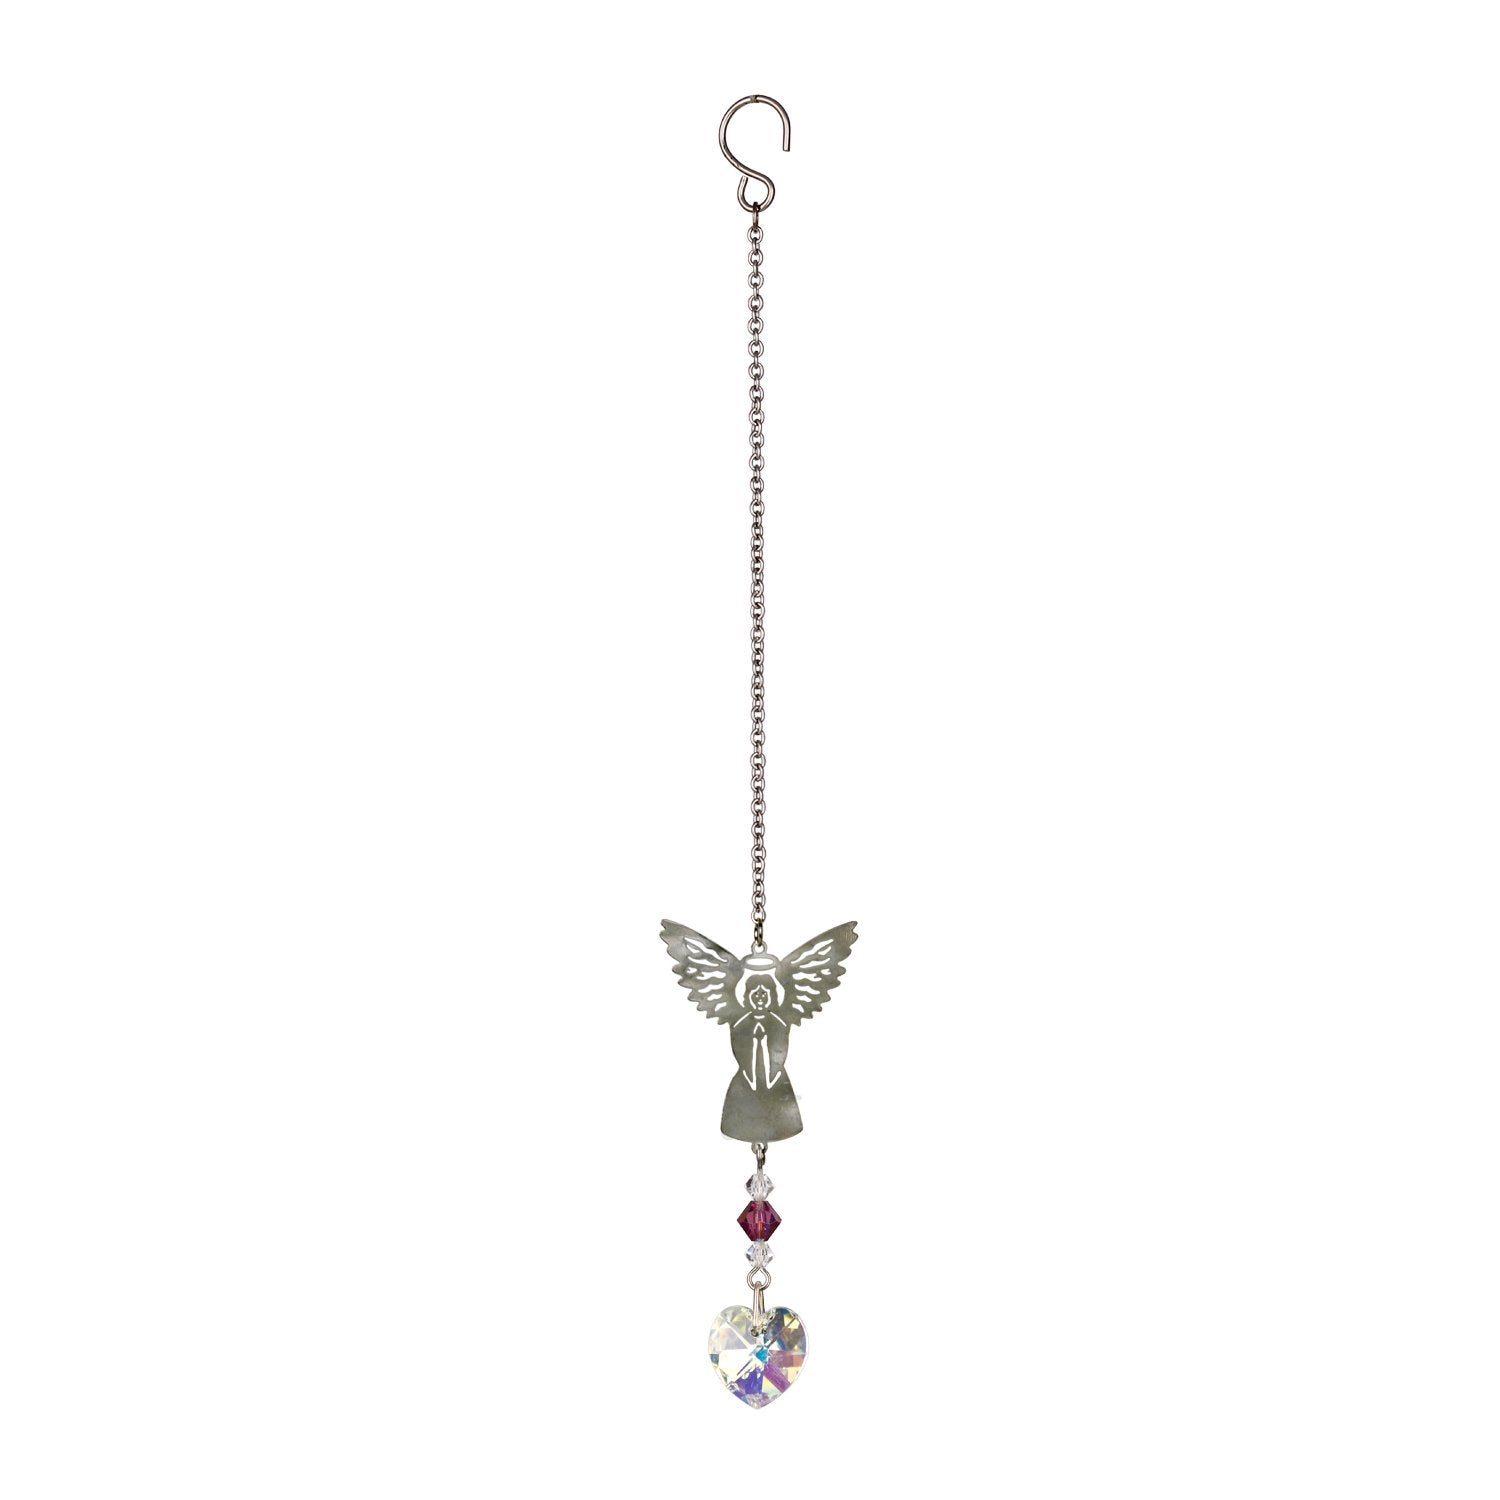 Birthstone Angel Crystal Suncatcher - February full product image